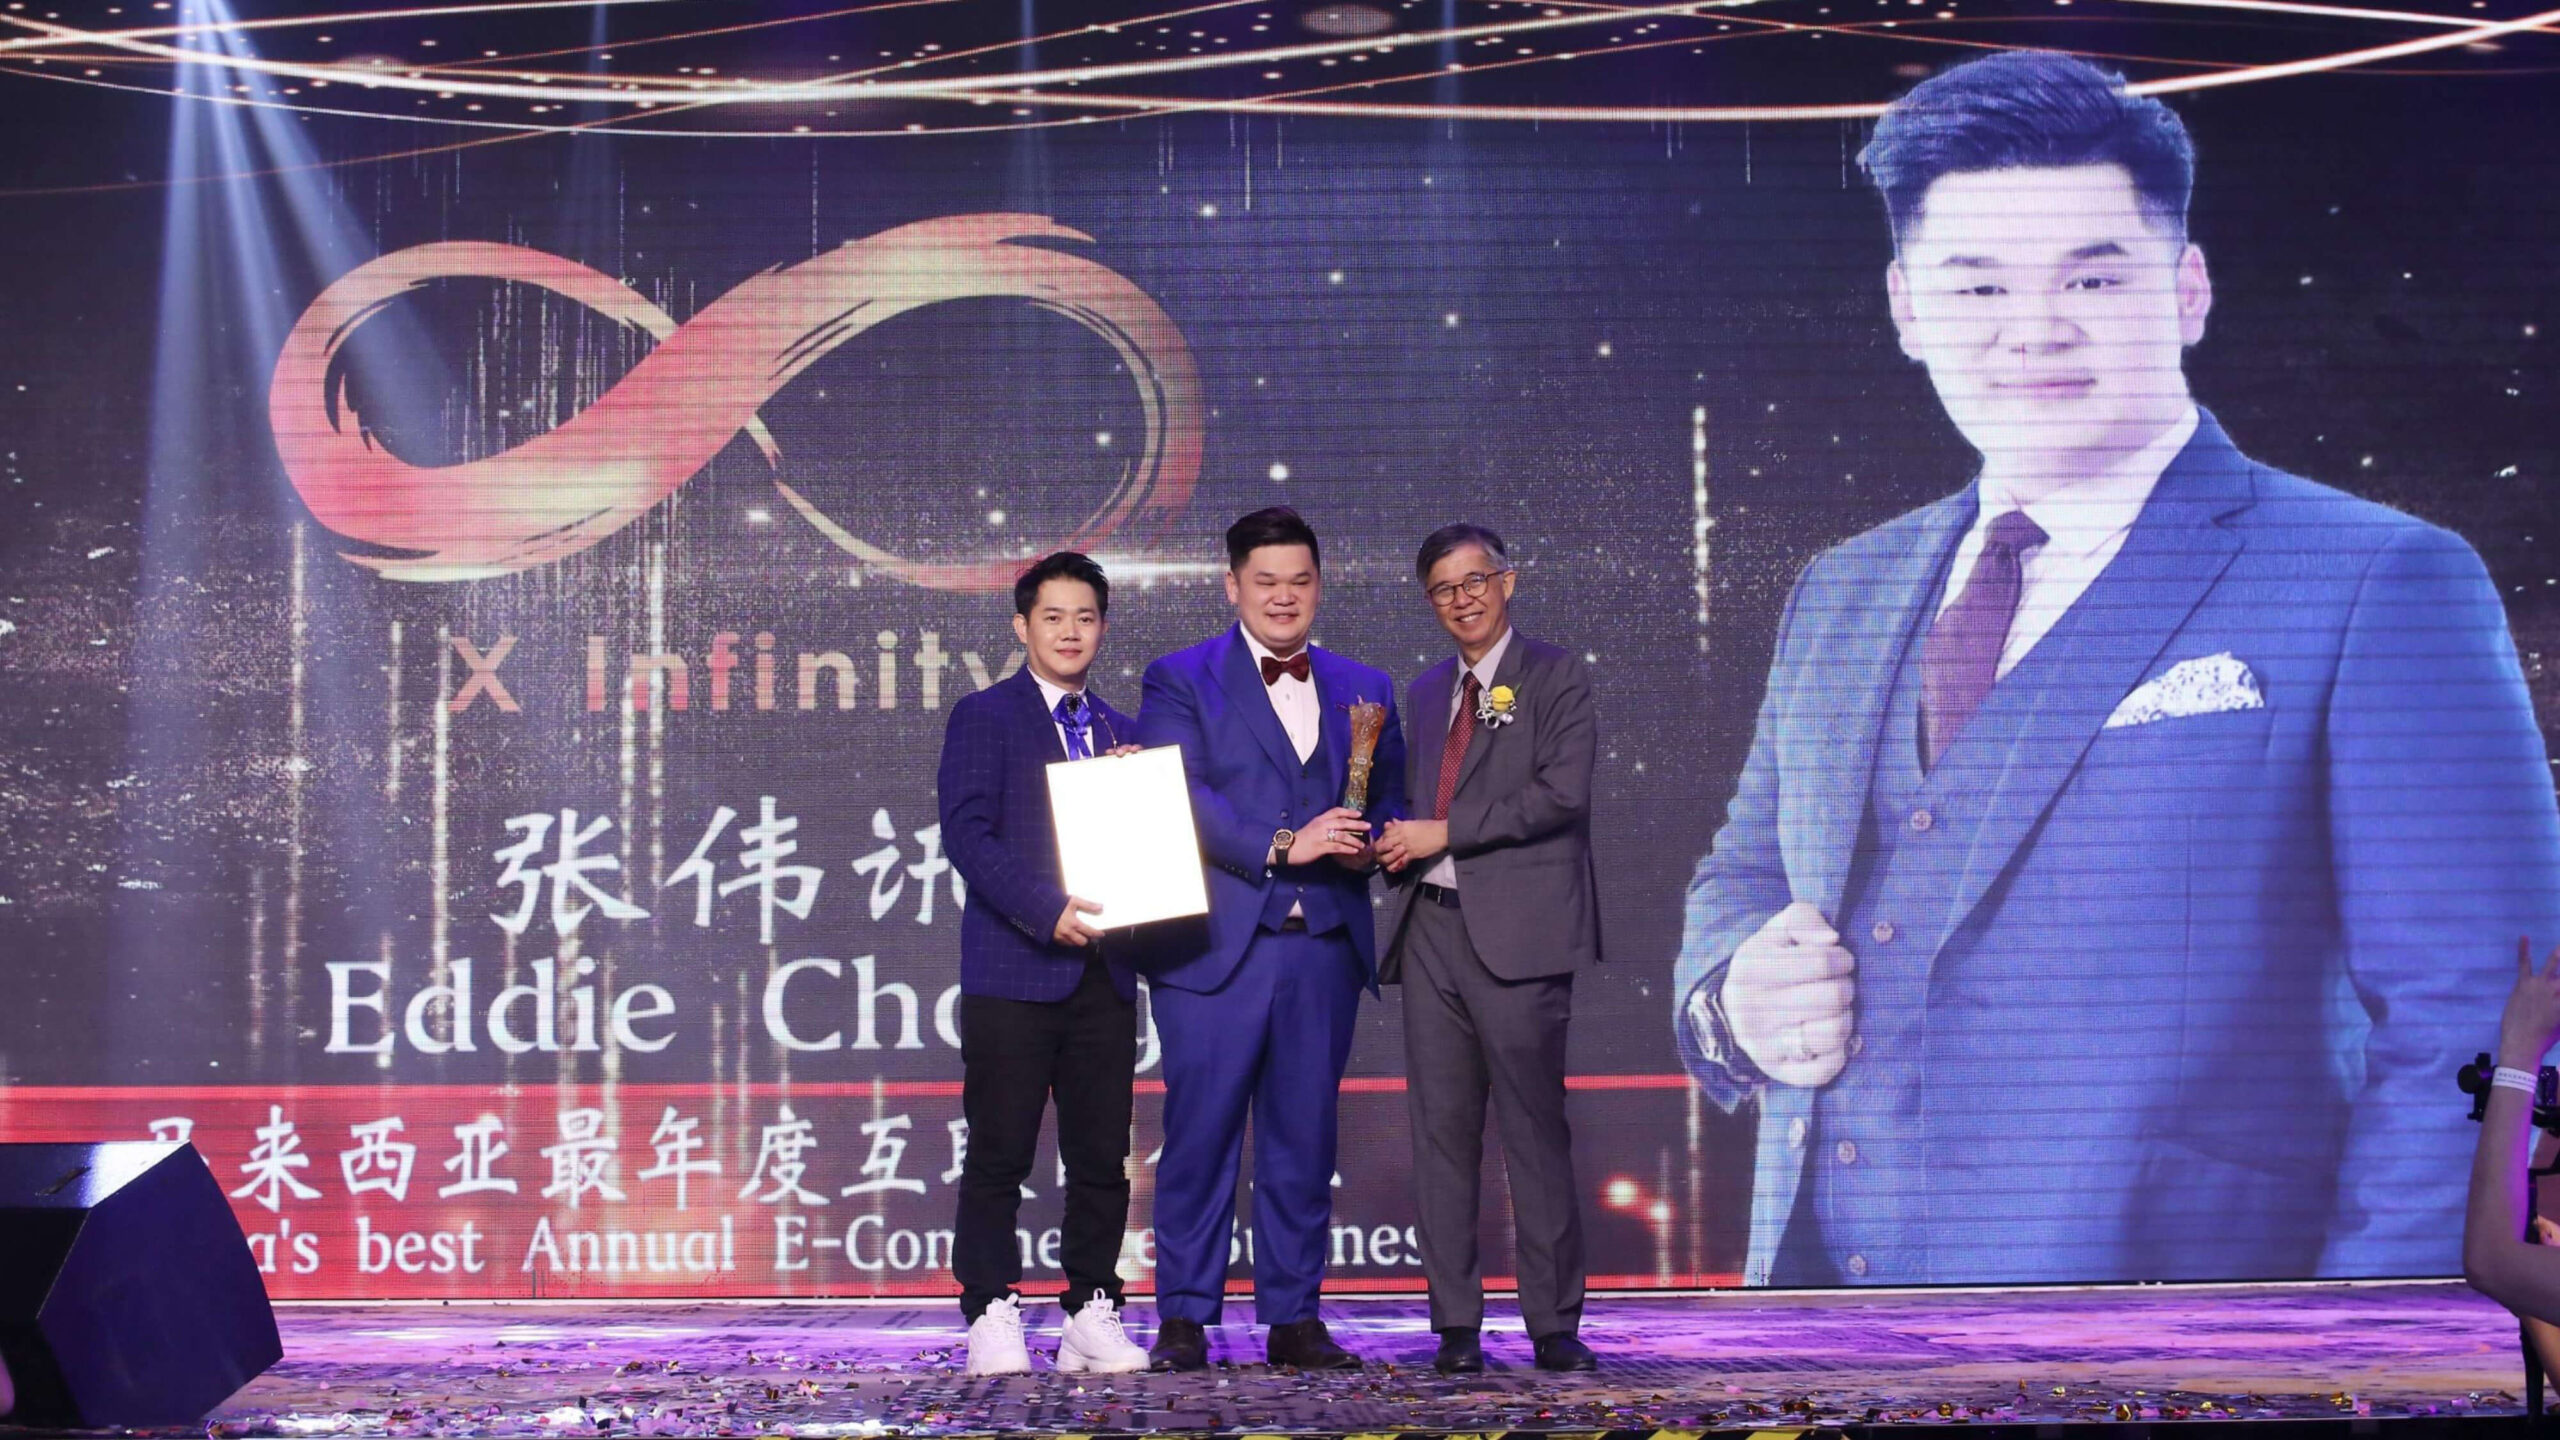 xinfinity-accolades-asia's-most-influential-ecommerce-award-2019